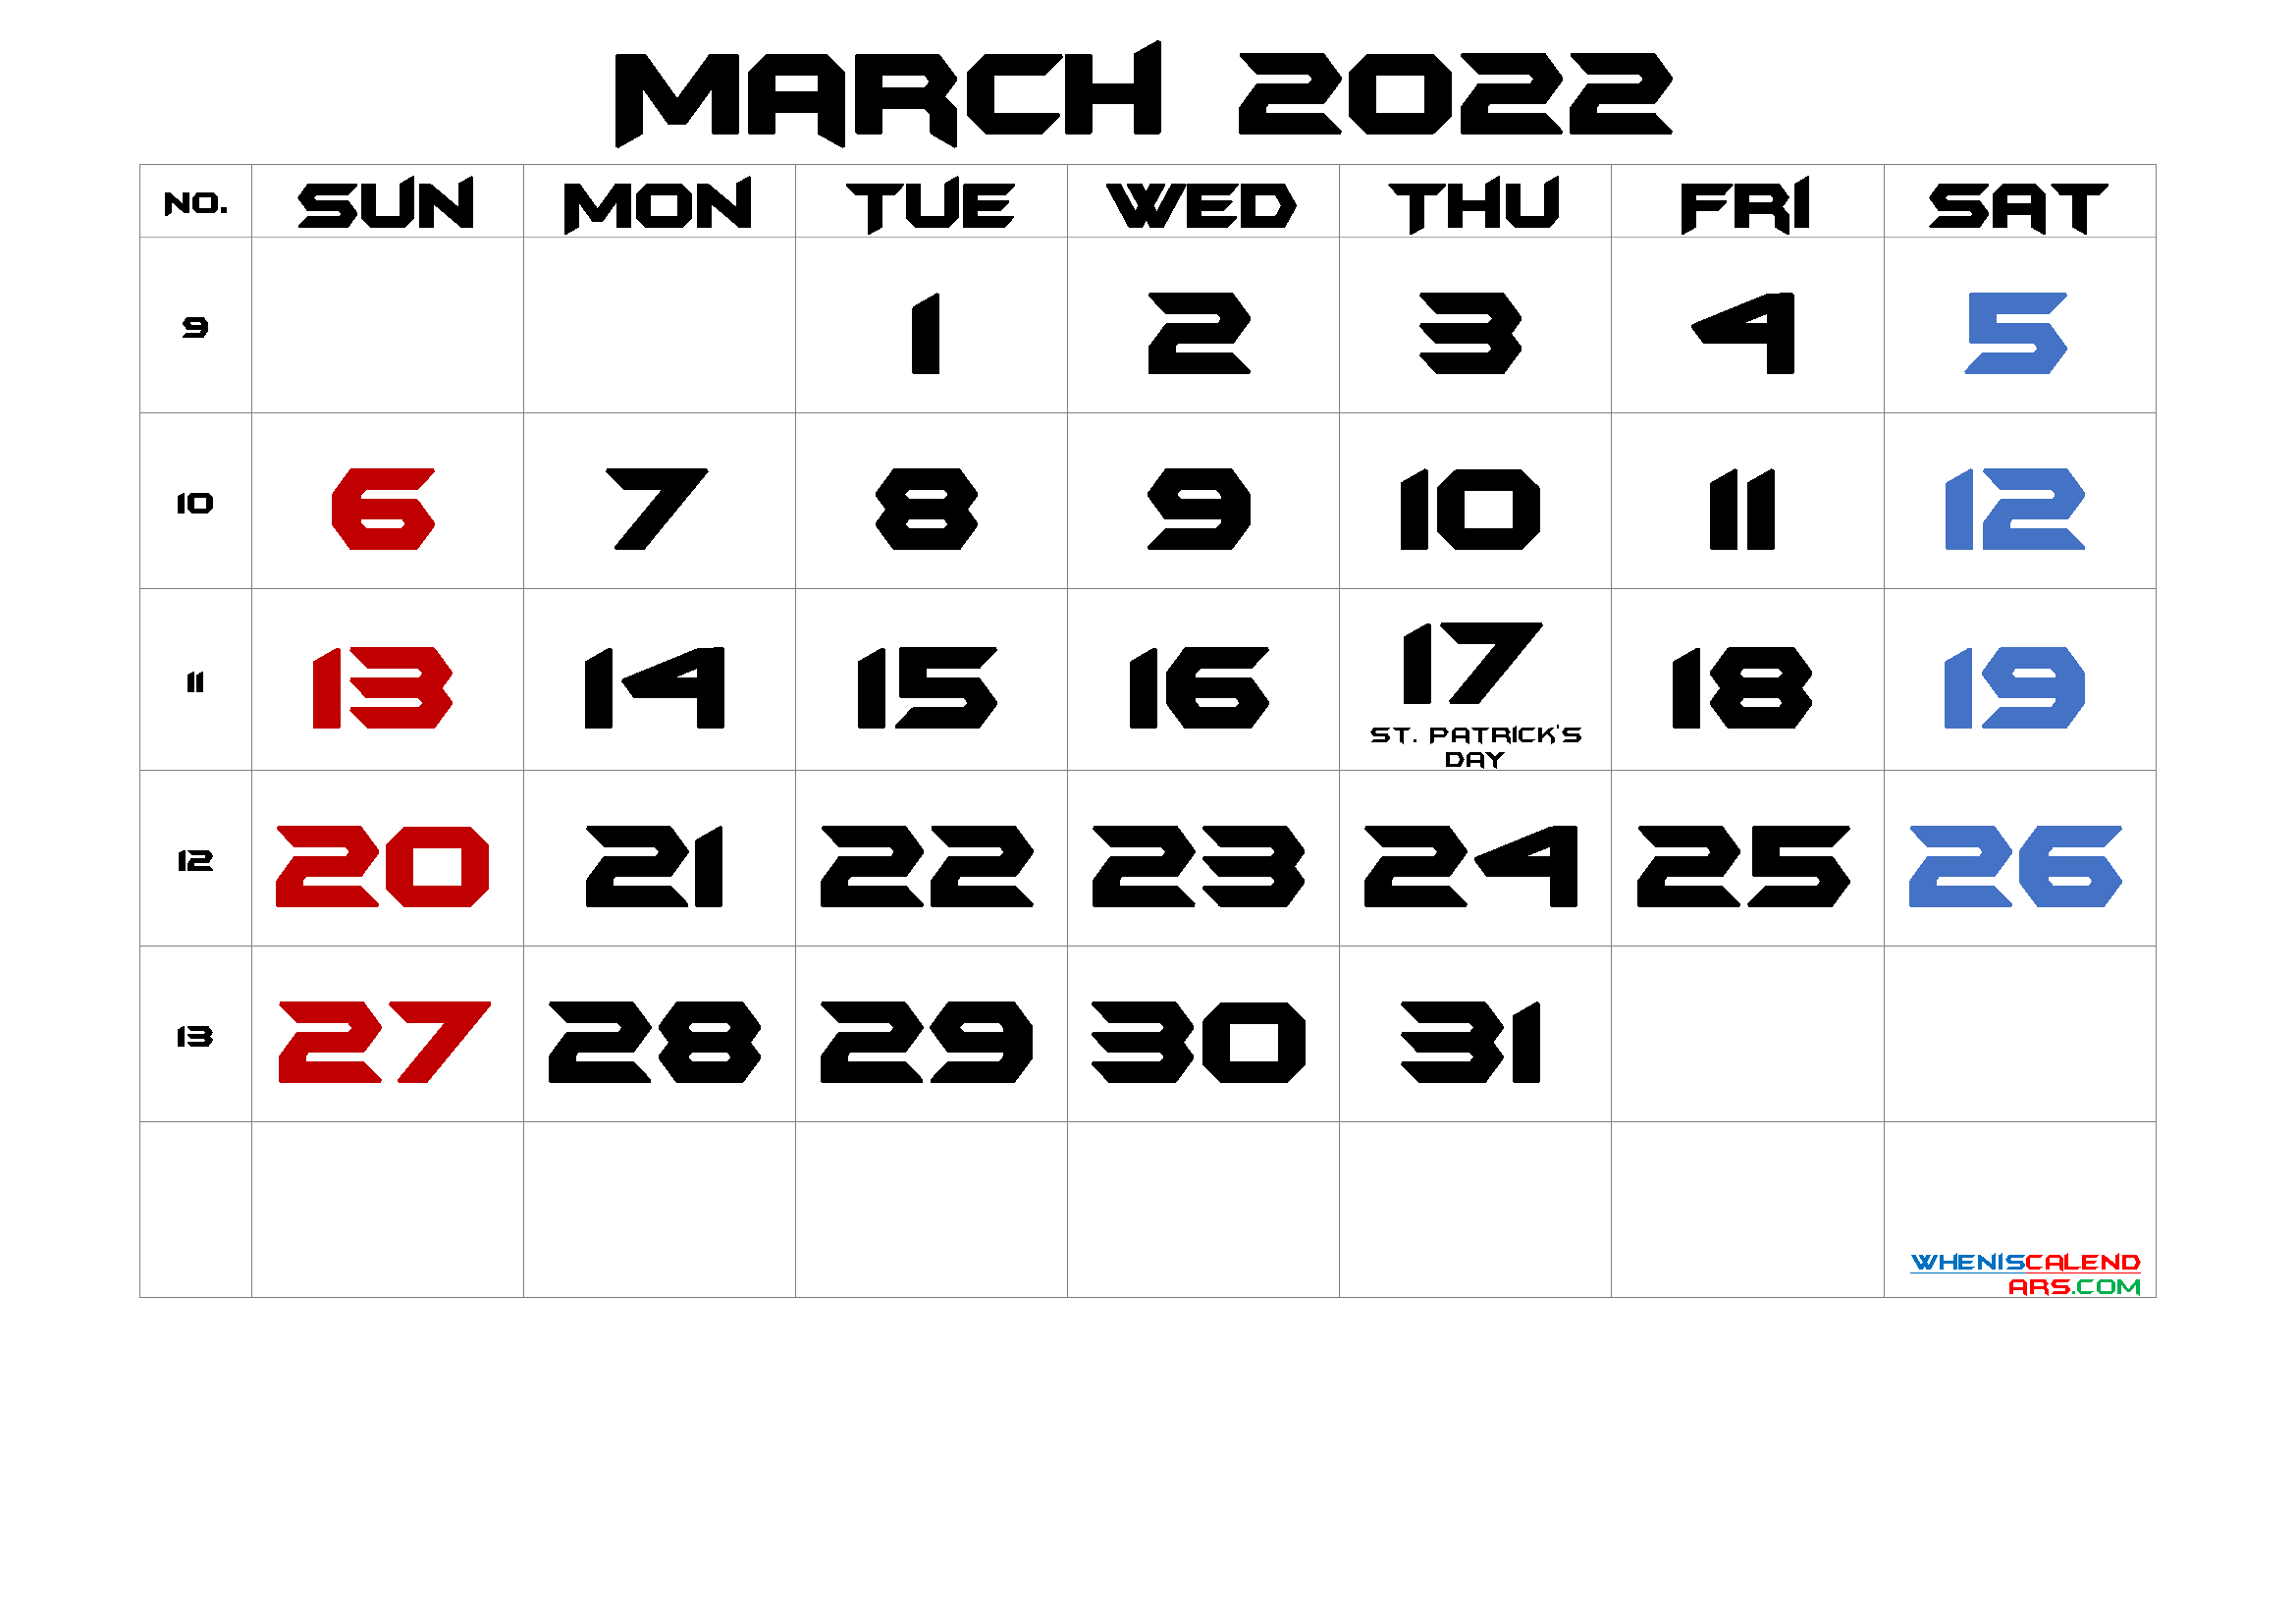 MARCH 2022 Printable Calendar with Holidays